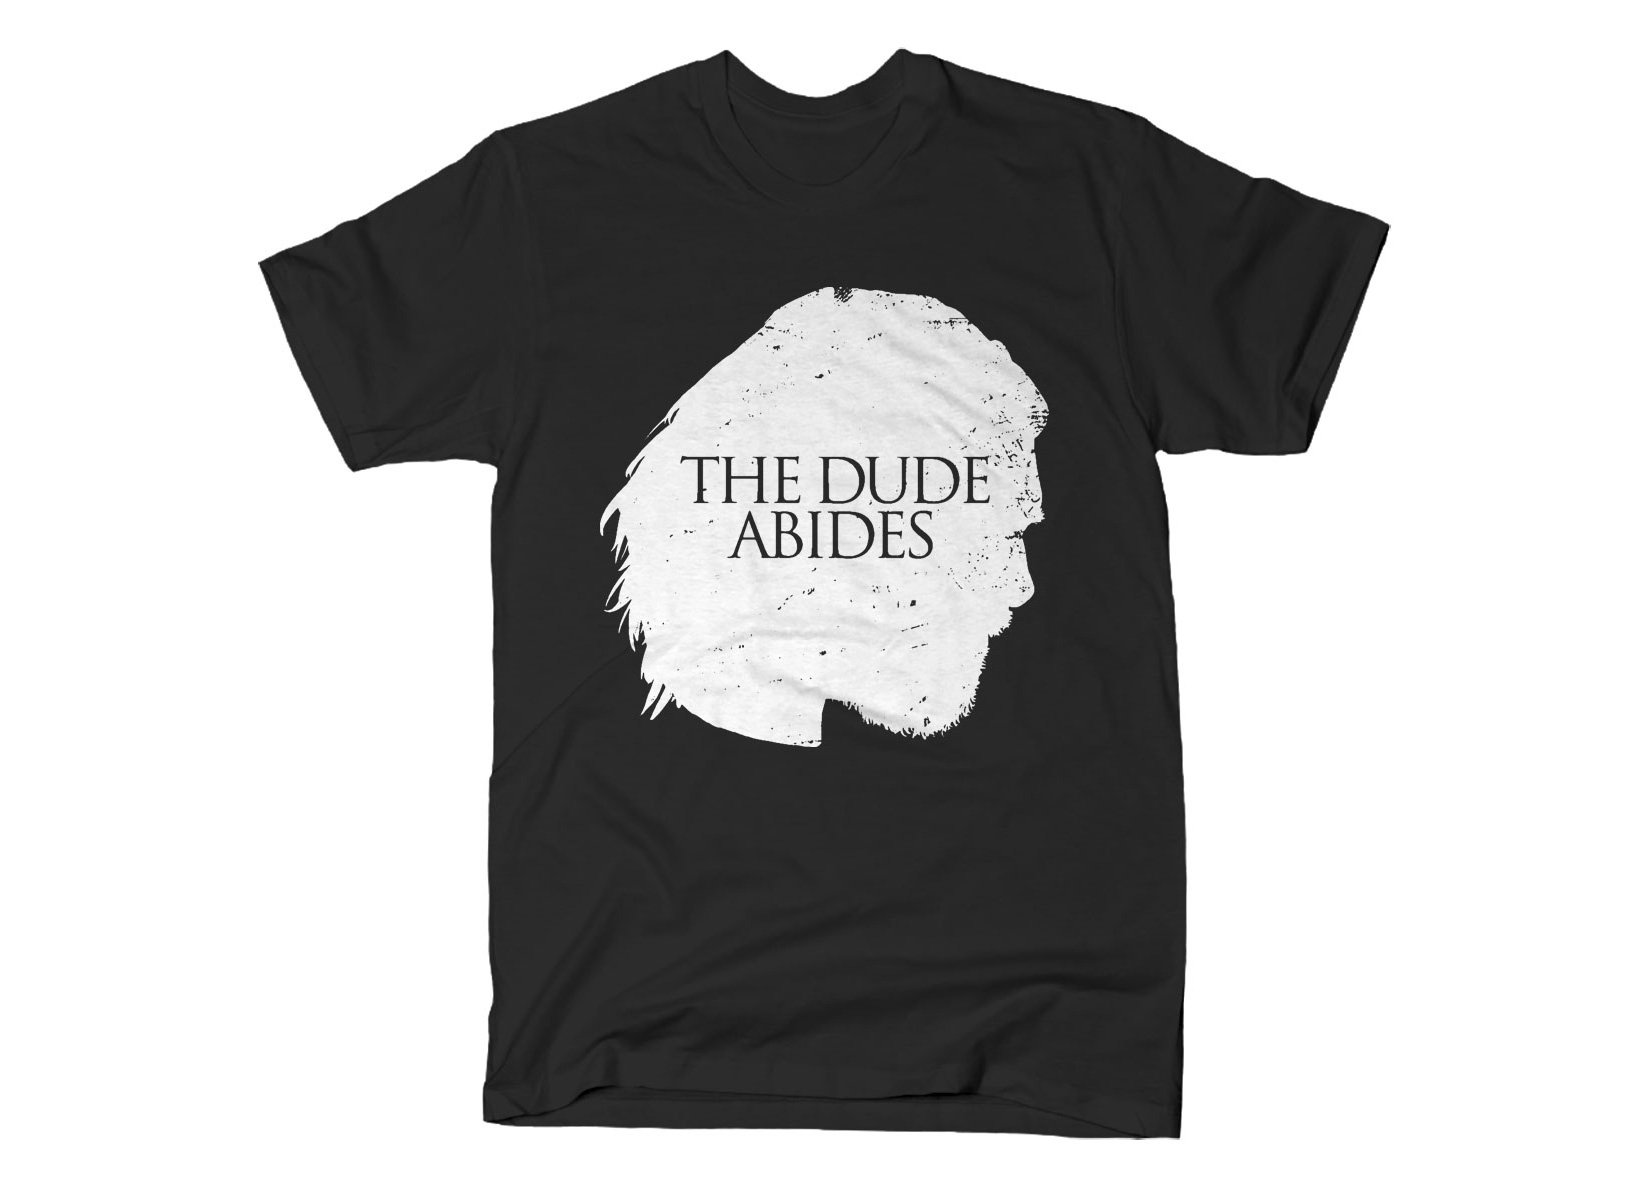 The Dude Abides on Mens T-Shirt